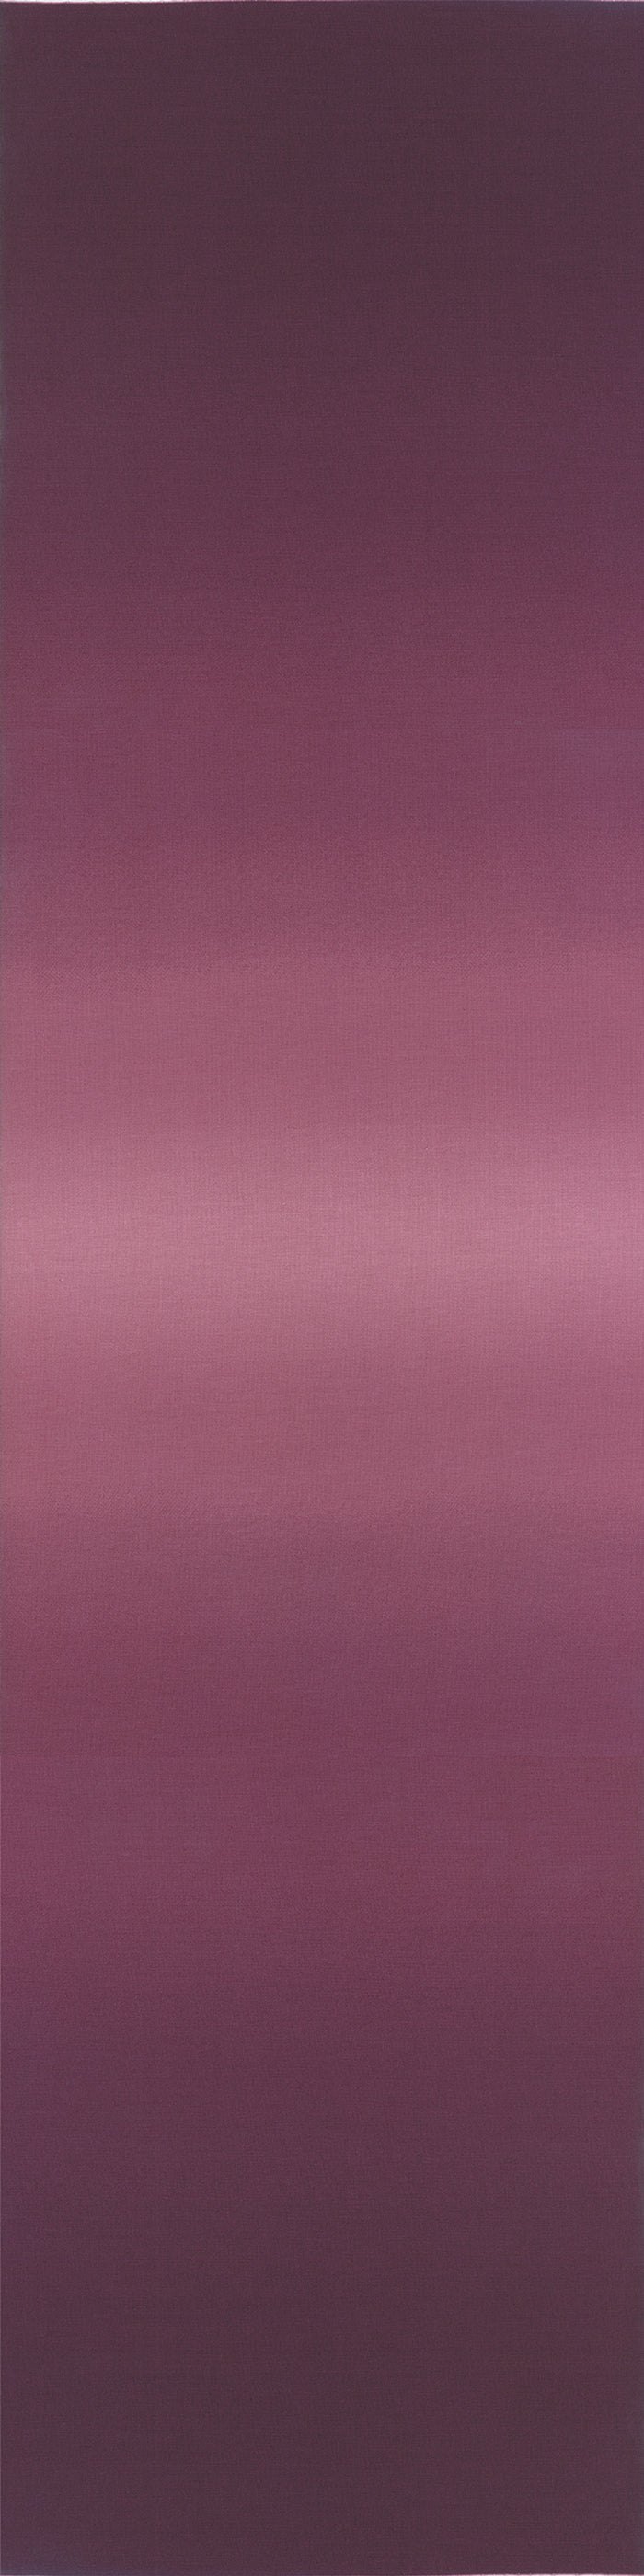 OMBRE Plum 10800 208G.Priced per 25cm.